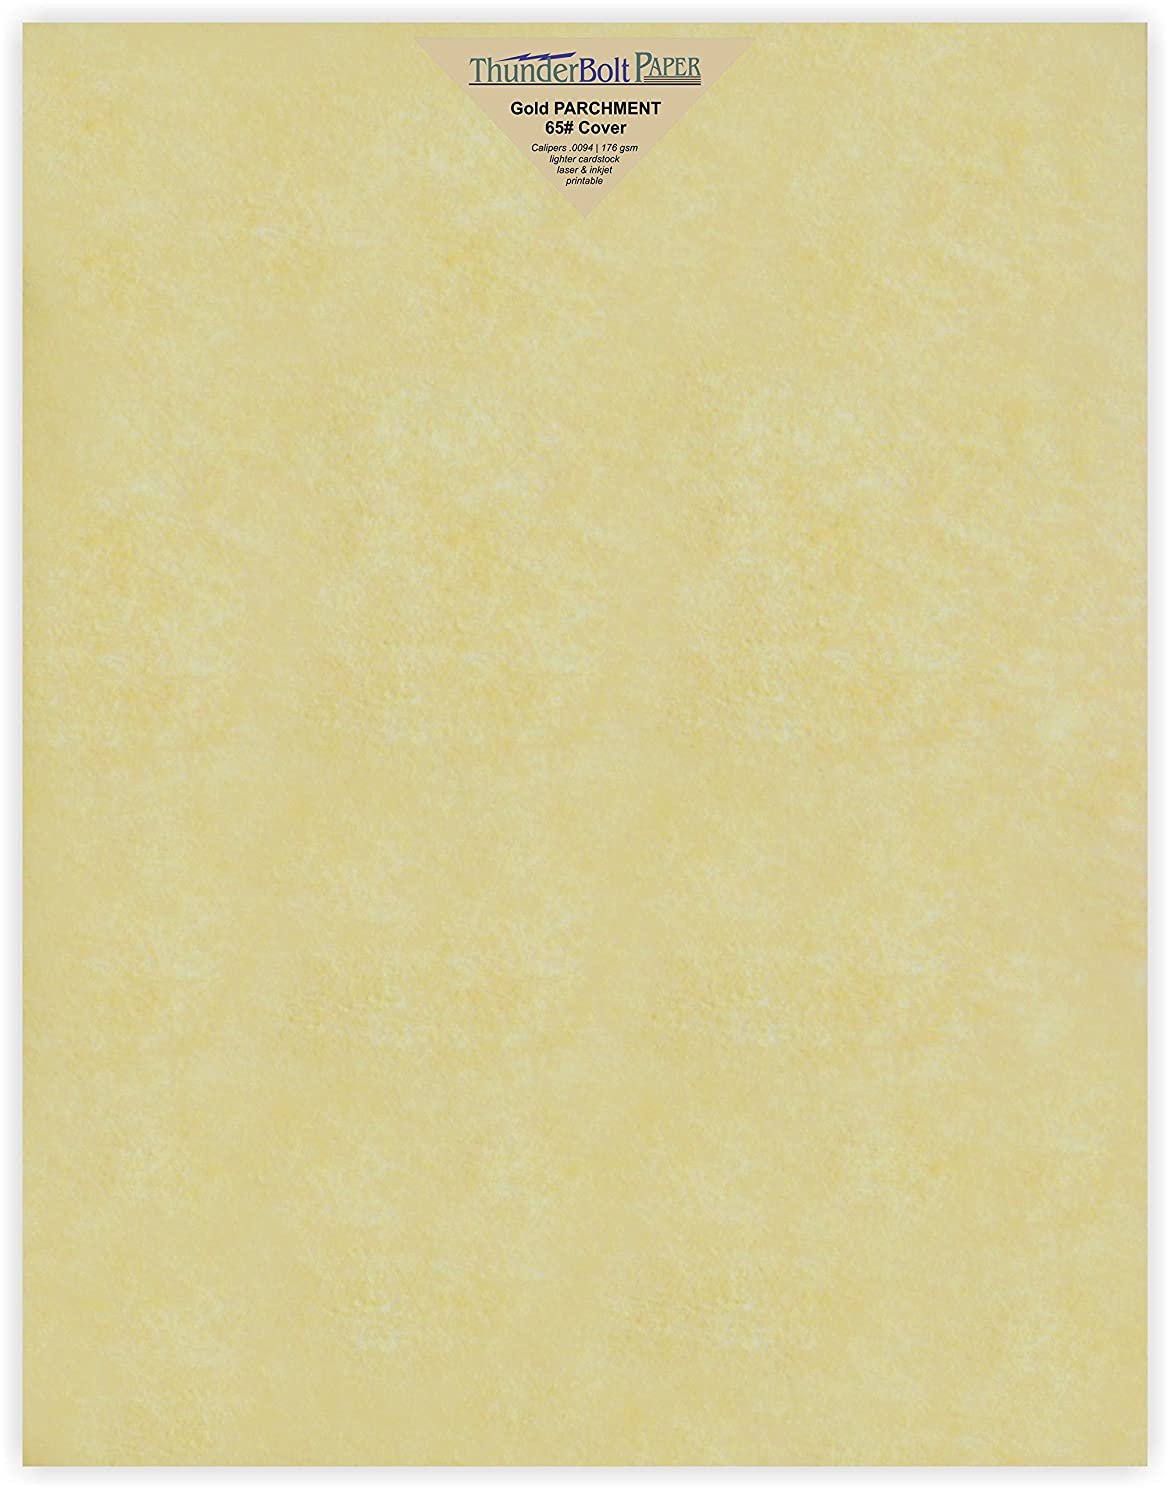 25 Gold Parchment 65lb Cover Weight Paper - 11